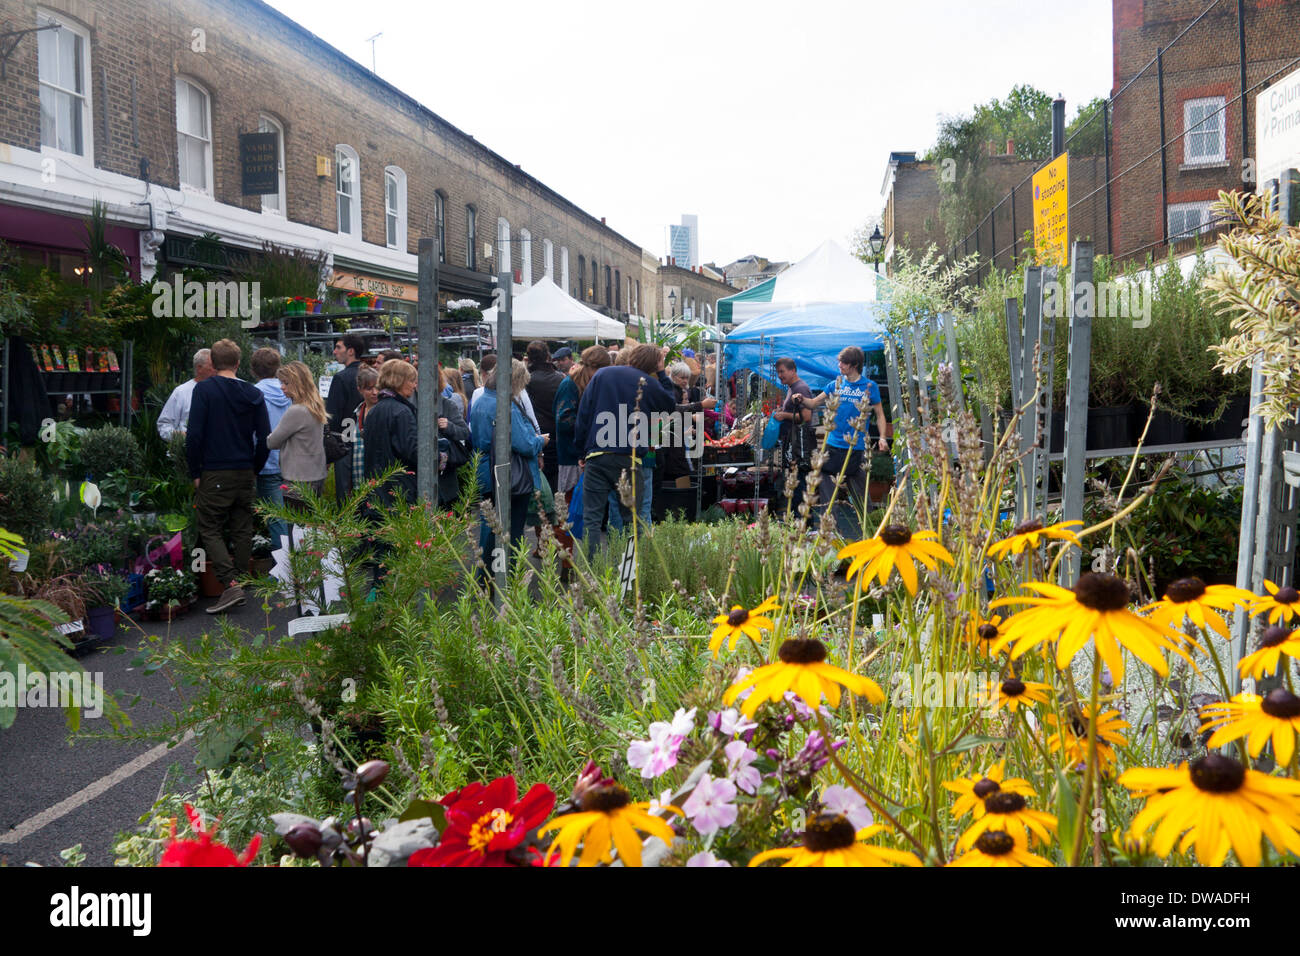 Columbia Road Flower Market Bethnal Green London England UK Flowers on stall in foreground people browsing in background - Stock Image